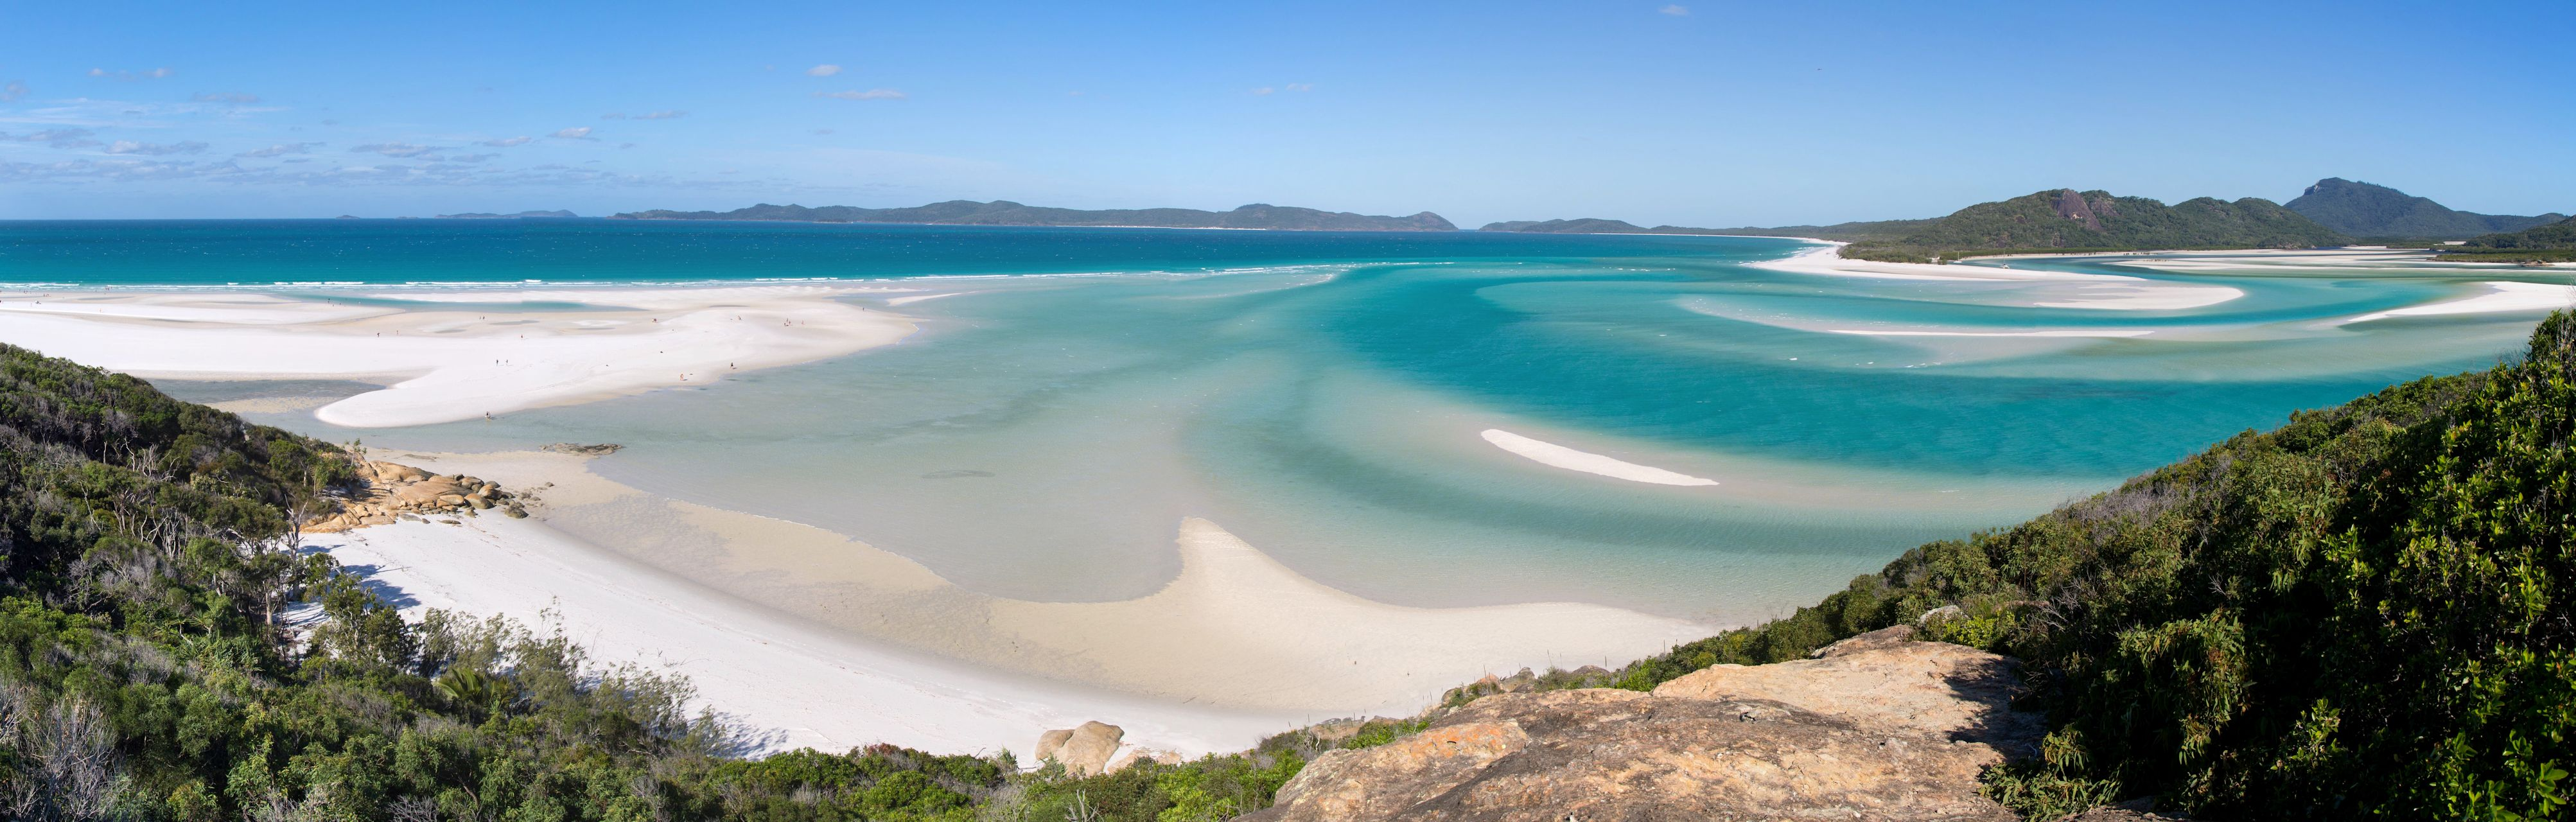 Whitehaven Beach from Hill Inlet viewpoint, Whitsunday Island